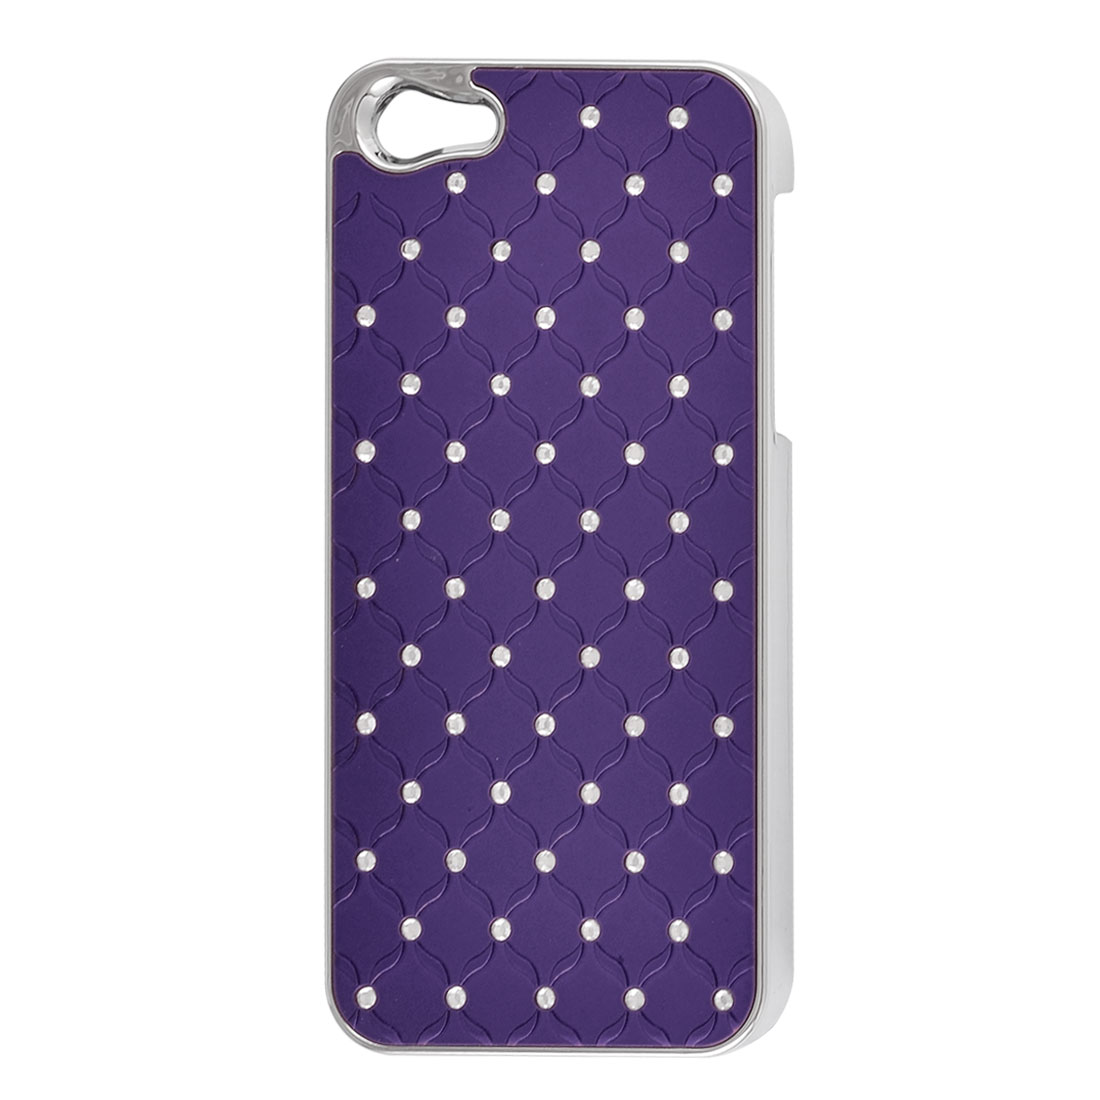 Dark Purple Faux Leather Coated Rhinestone Hard Back Case Cover for iPhone 5 5G